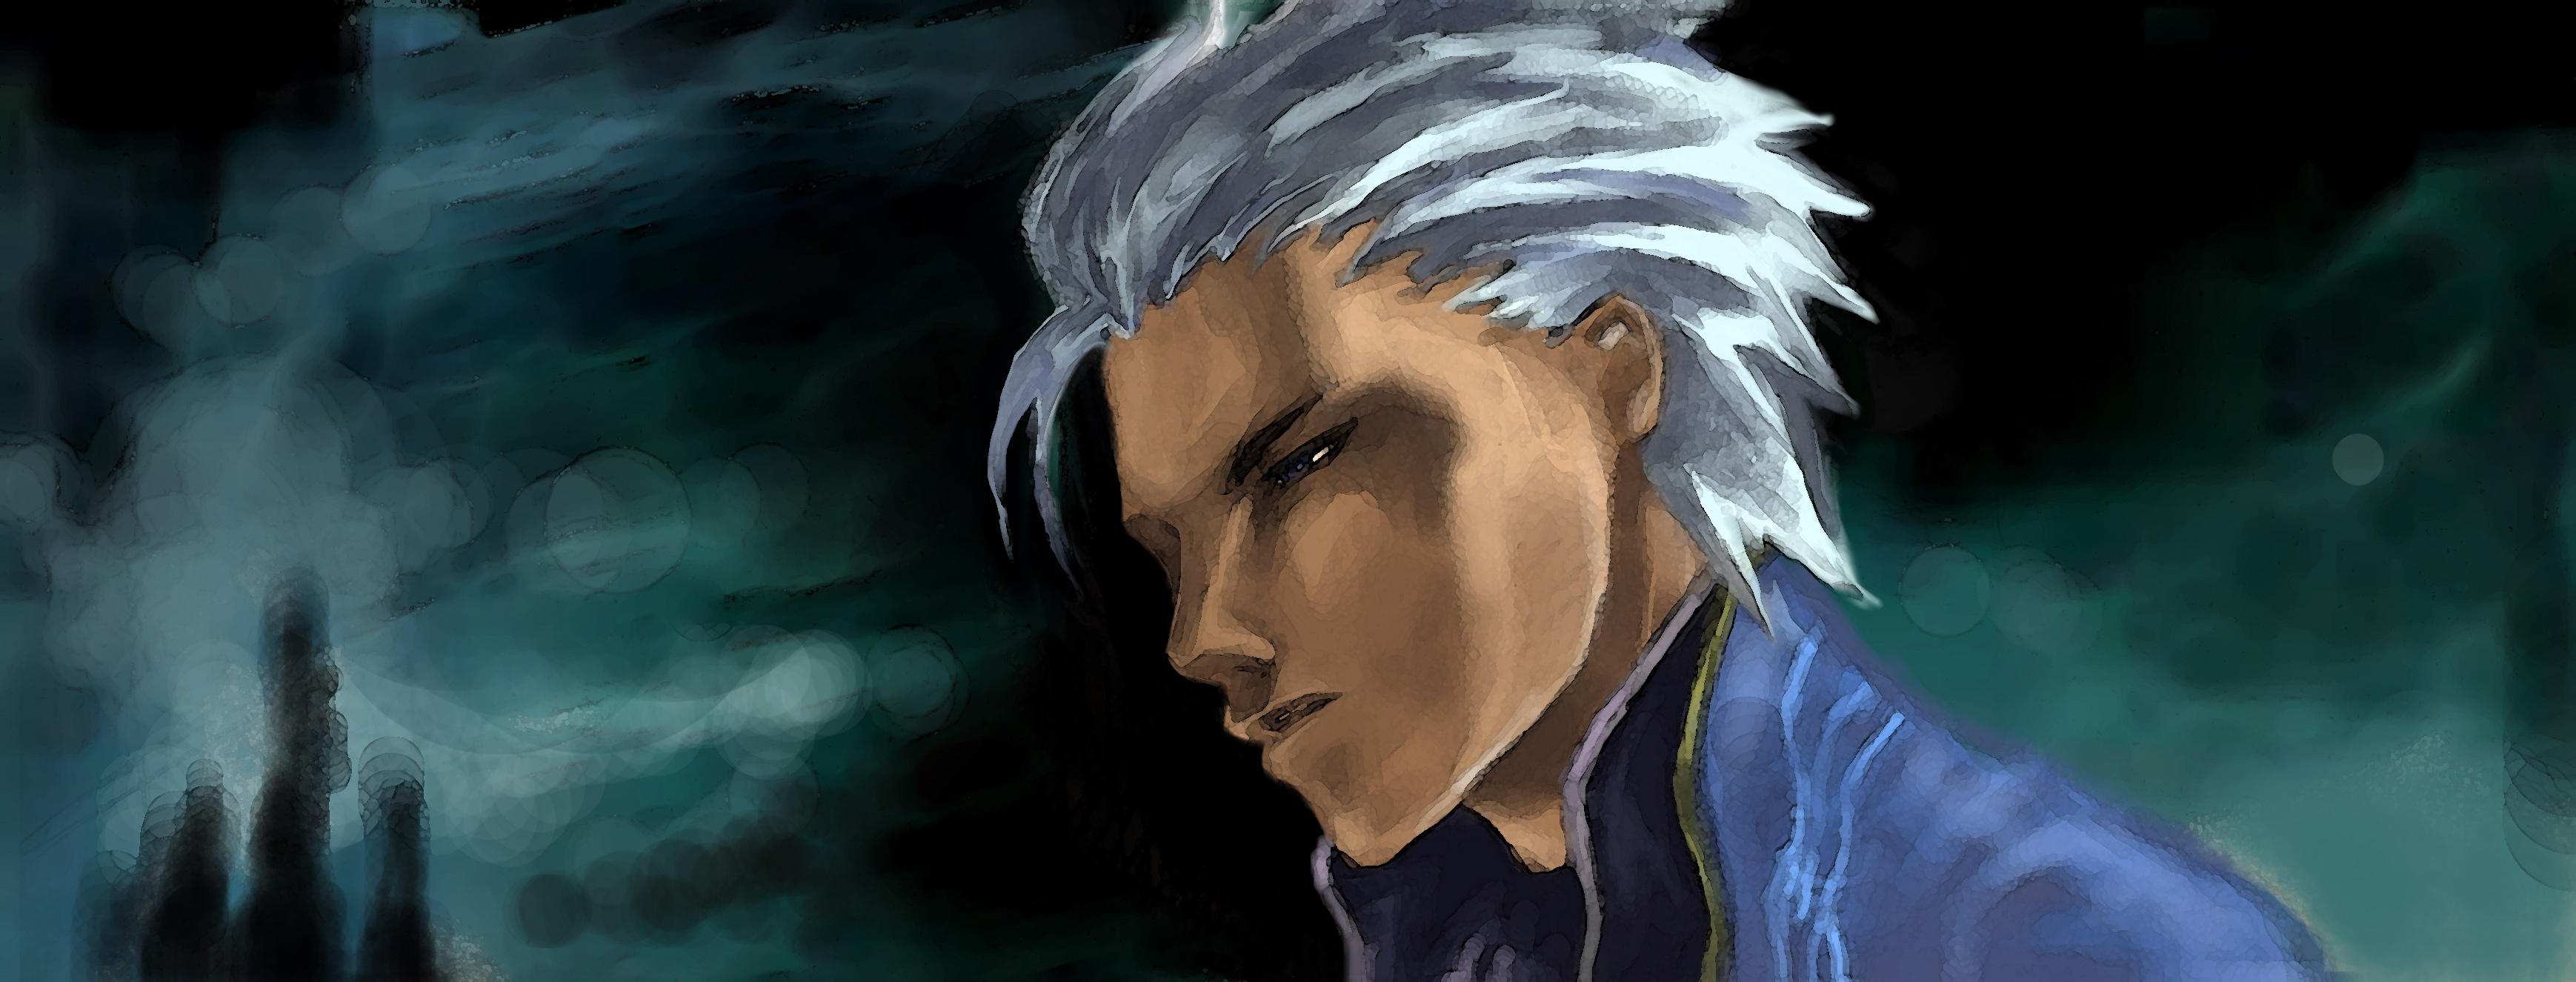 Devil may cry vergil by akuhen on deviantart devil may cry vergil by akuhen voltagebd Choice Image